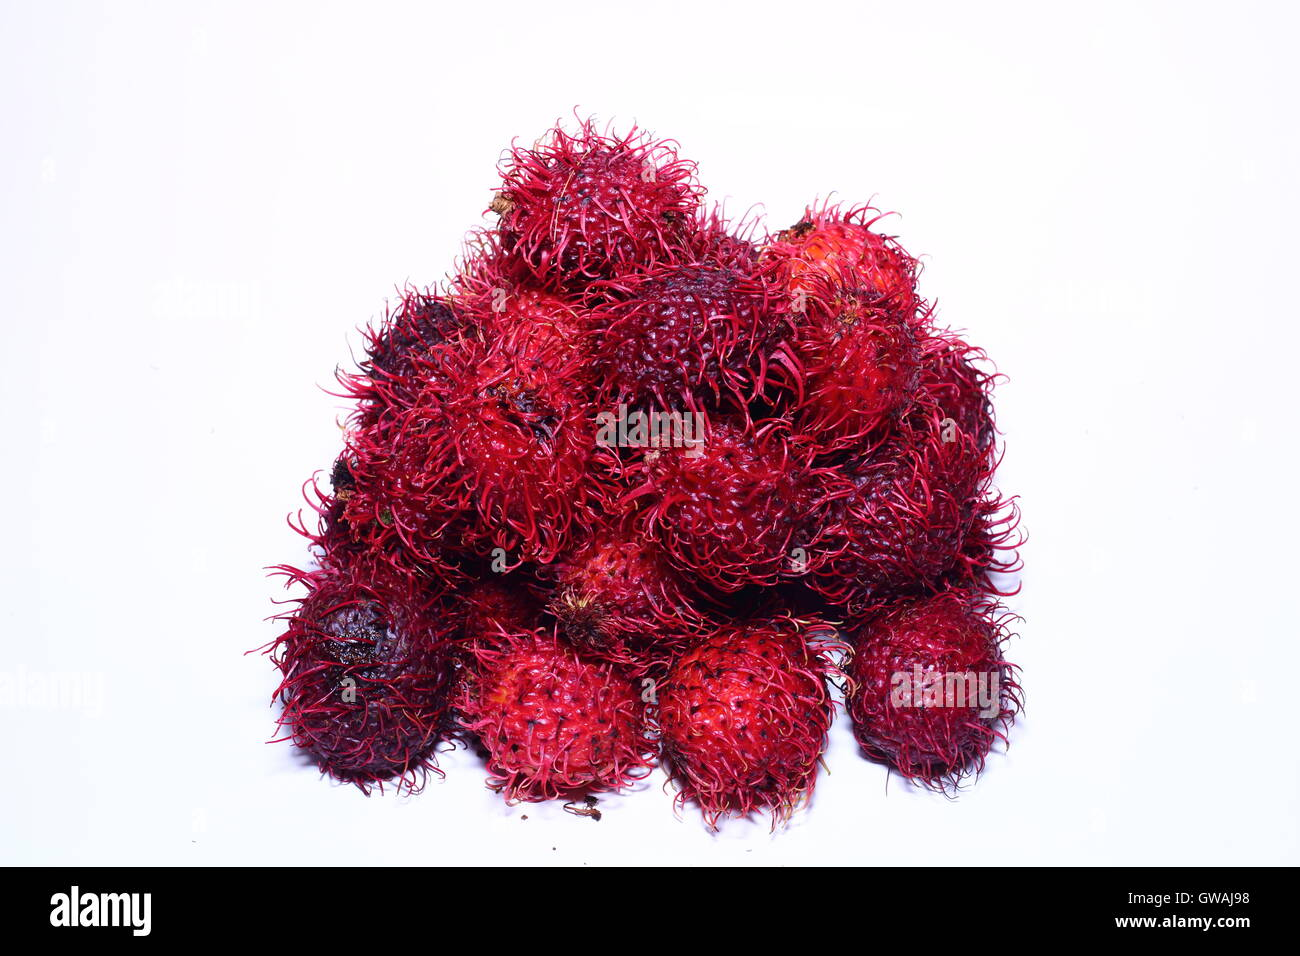 Pile of rambutan against a white background - Stock Image